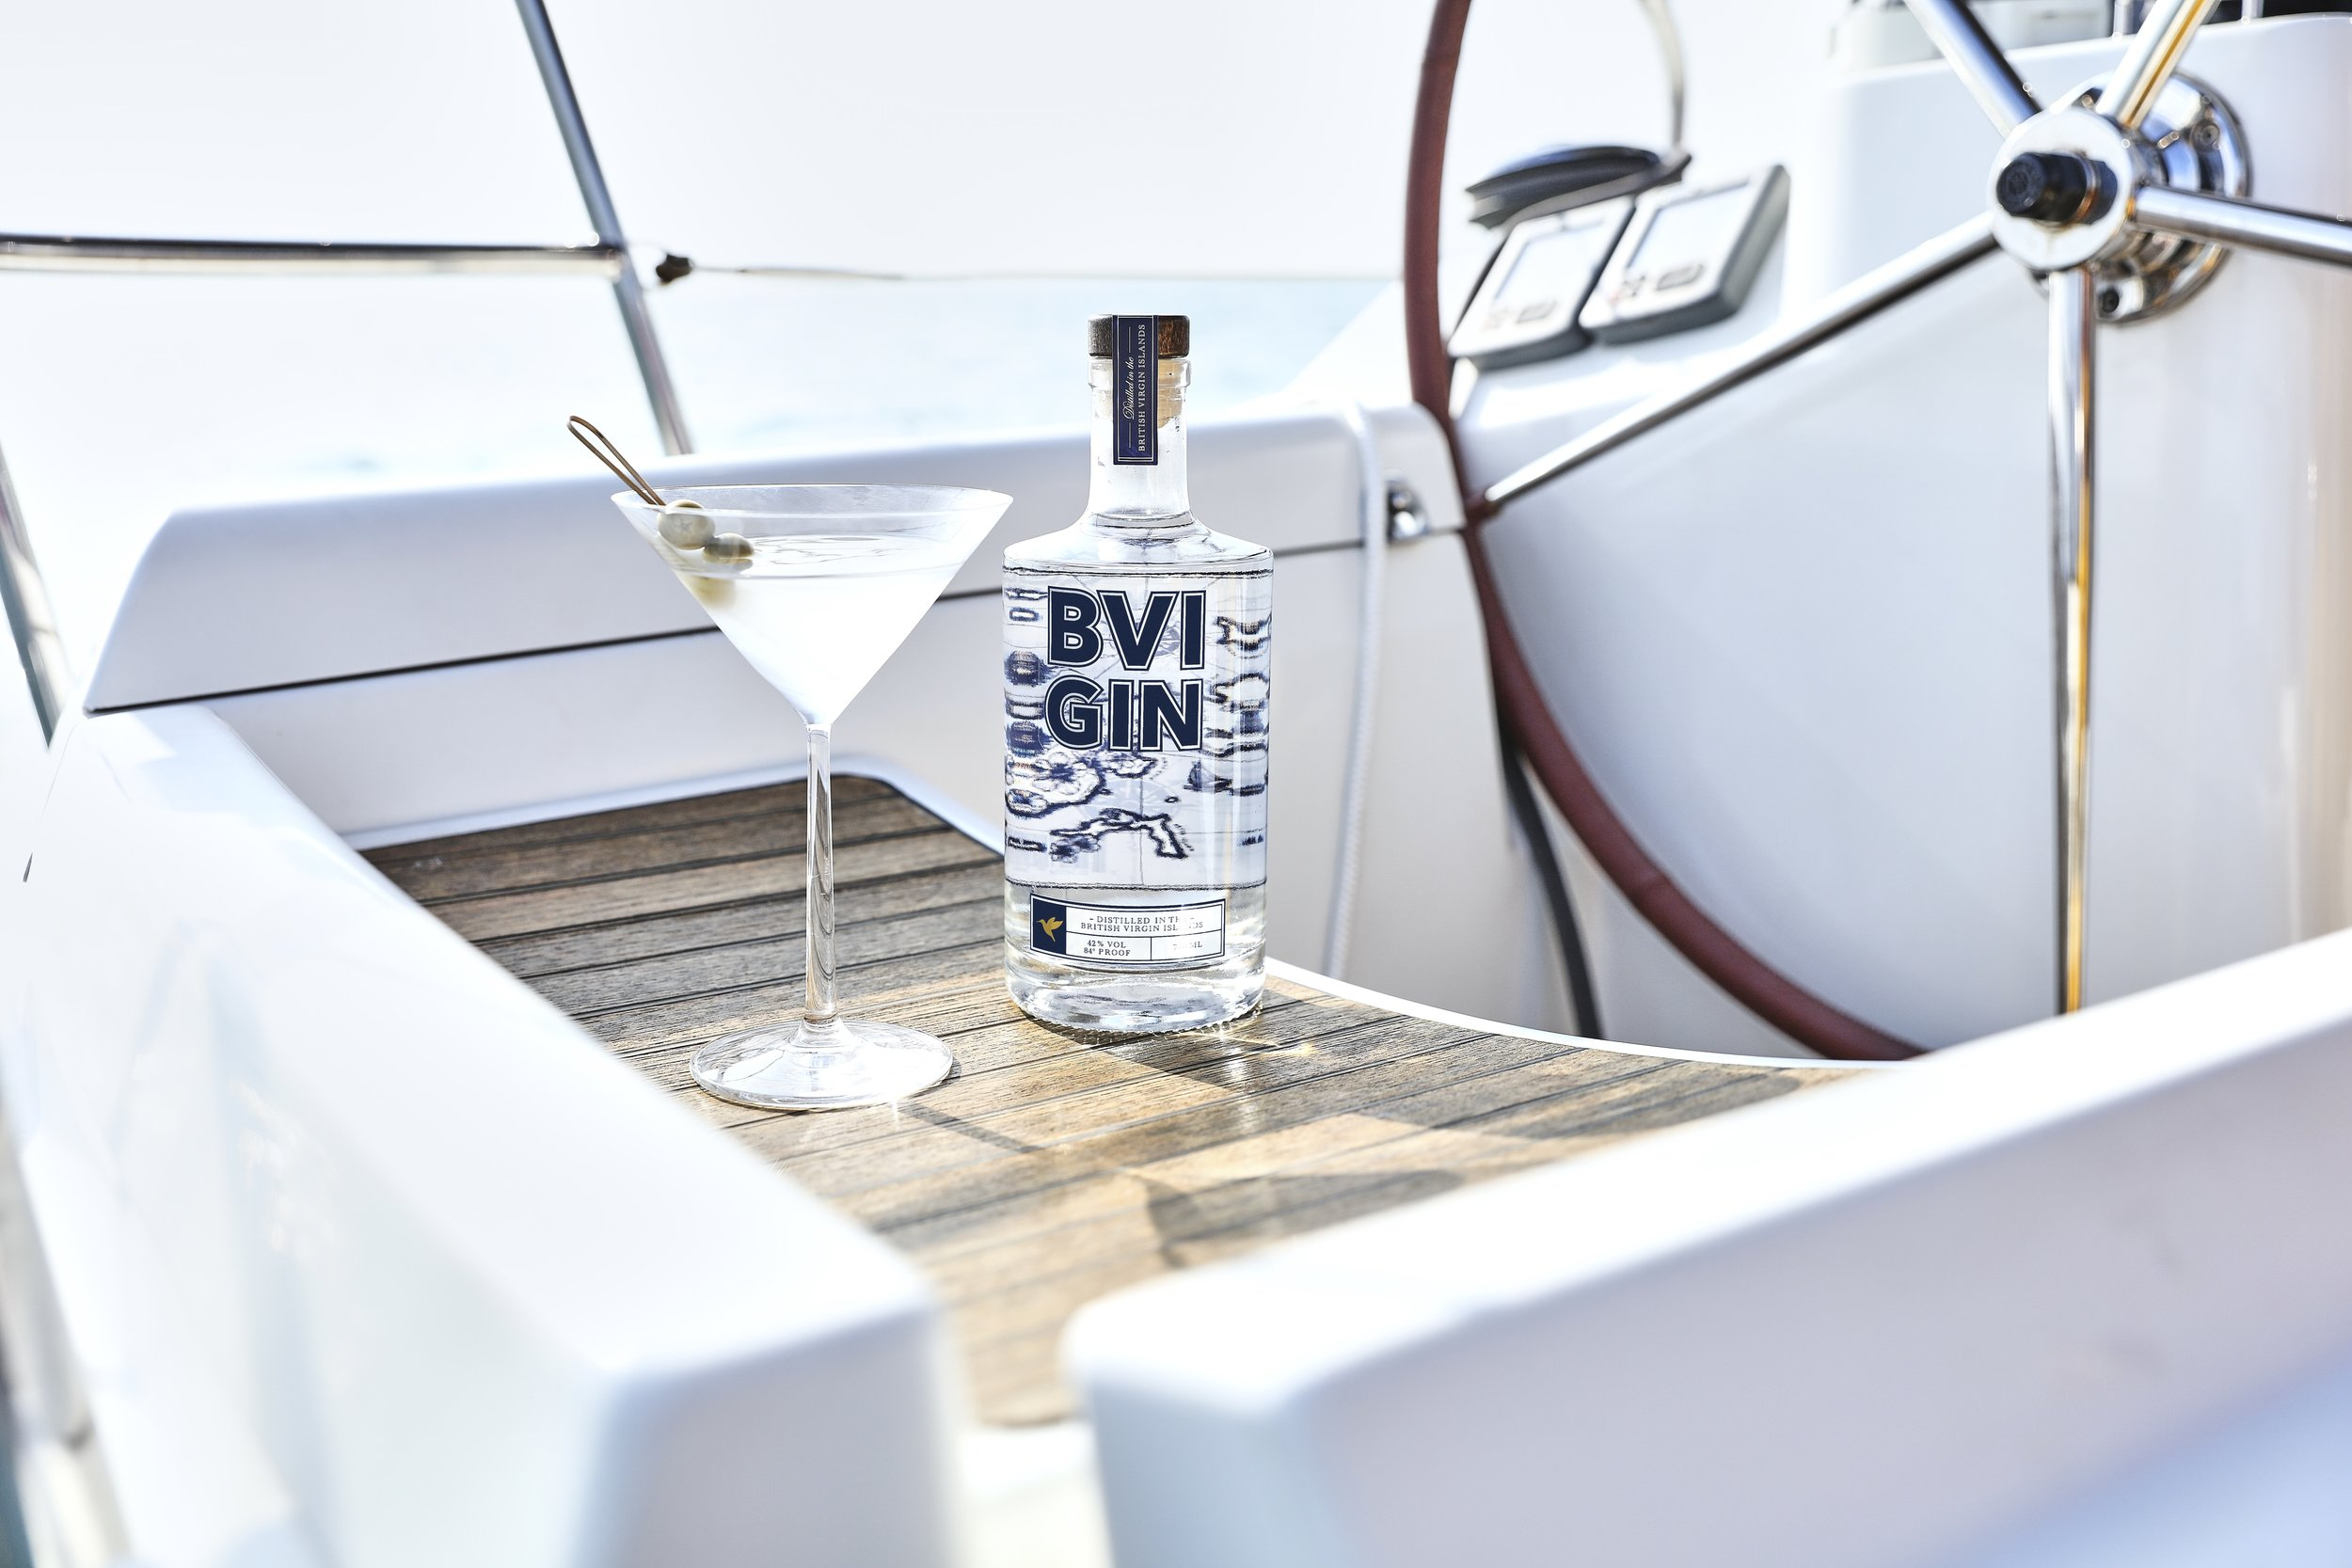 - Our mission is simple: to bring the BVI a locally produced gin of uncompromising quality and character. Distilled using carefully sourced, locally inspired botanicals including hibiscus flower, angelica root and grains of paradise, the resulting gin is fresh, smooth and with great depth of flavour; it perfectly captures the spirit of the British Virgin Islands.